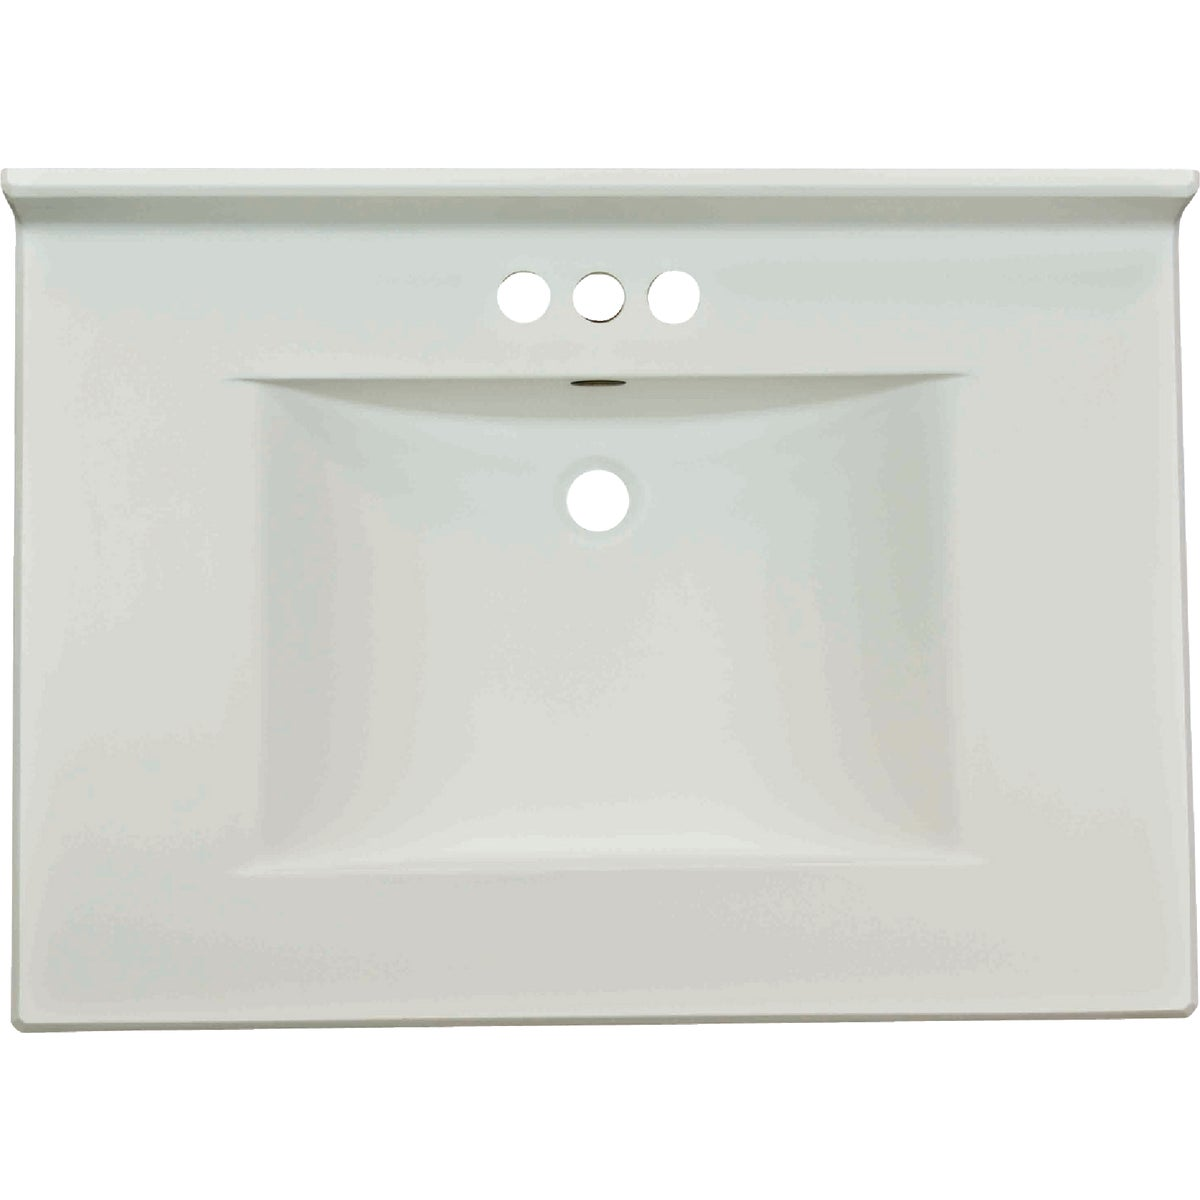 SOLID WHITE WAVE BOWL - VW3122SPWSS by Imperial Marble Corp